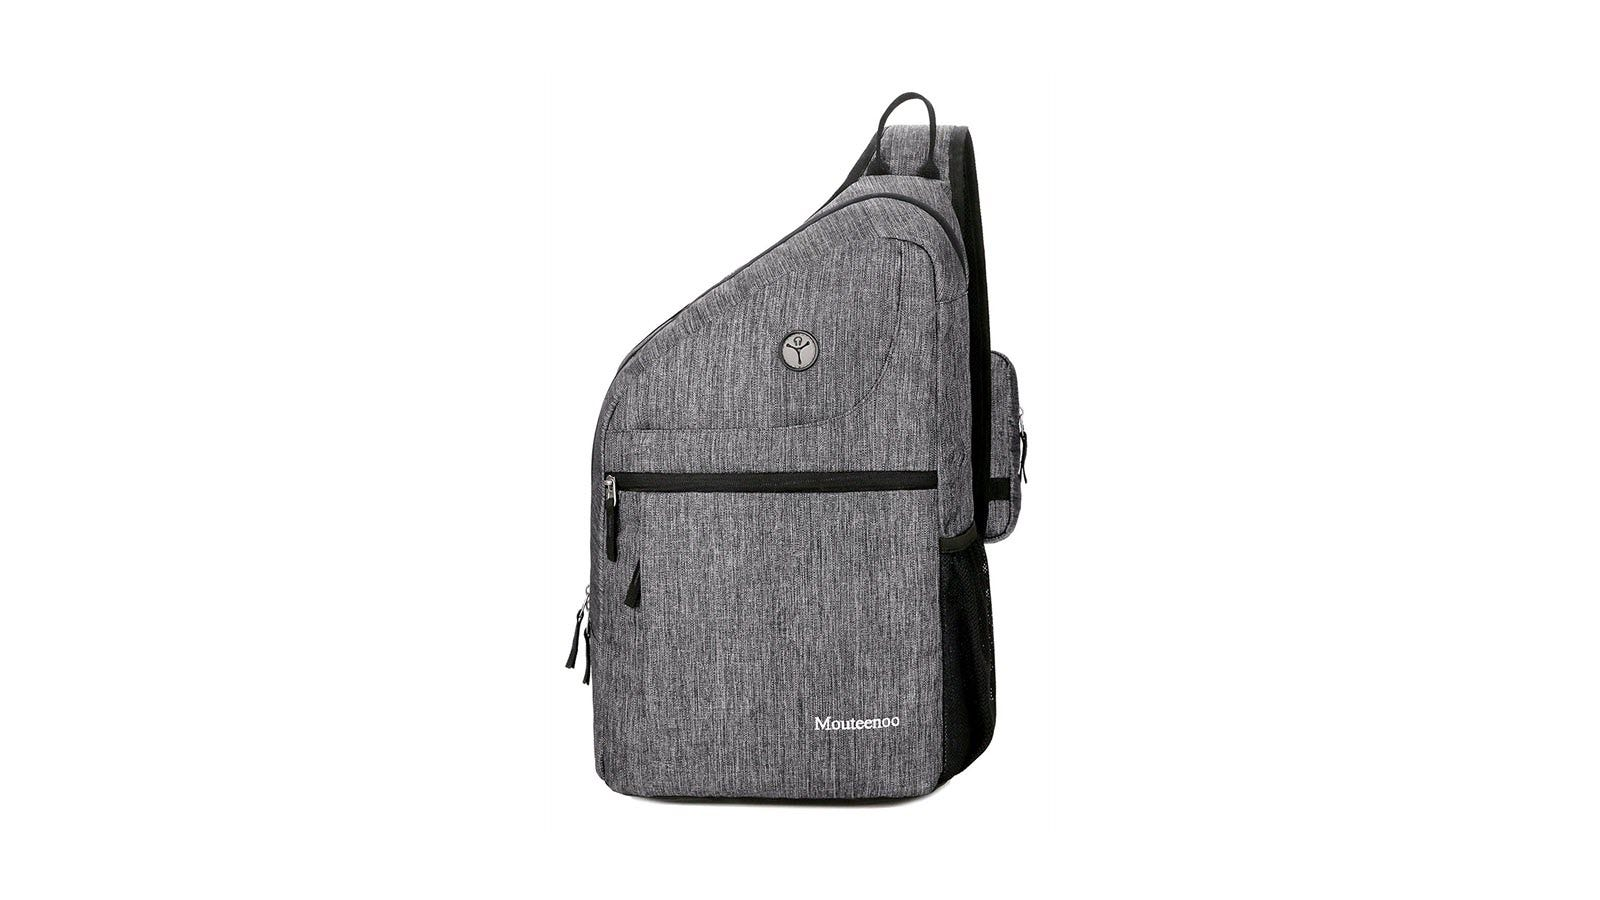 A grey Mouteenoo sling pack, showing a top-carry handle.